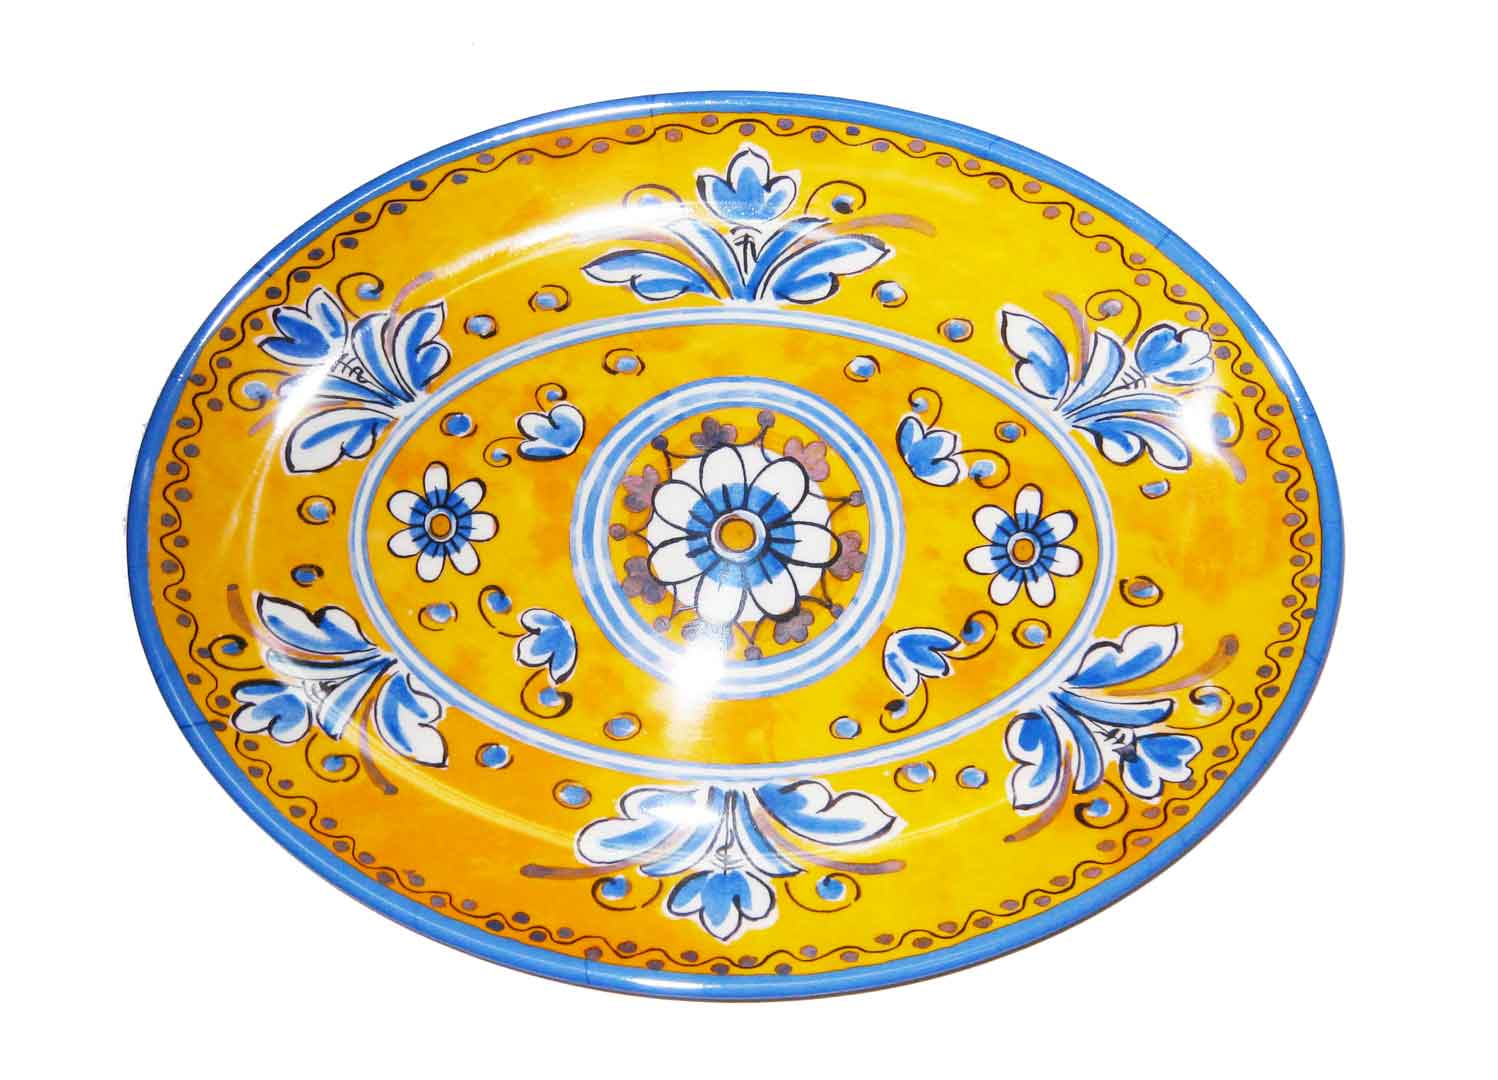 Le Cadeaux Dinnerware | Lowest Prices, Free Shipping